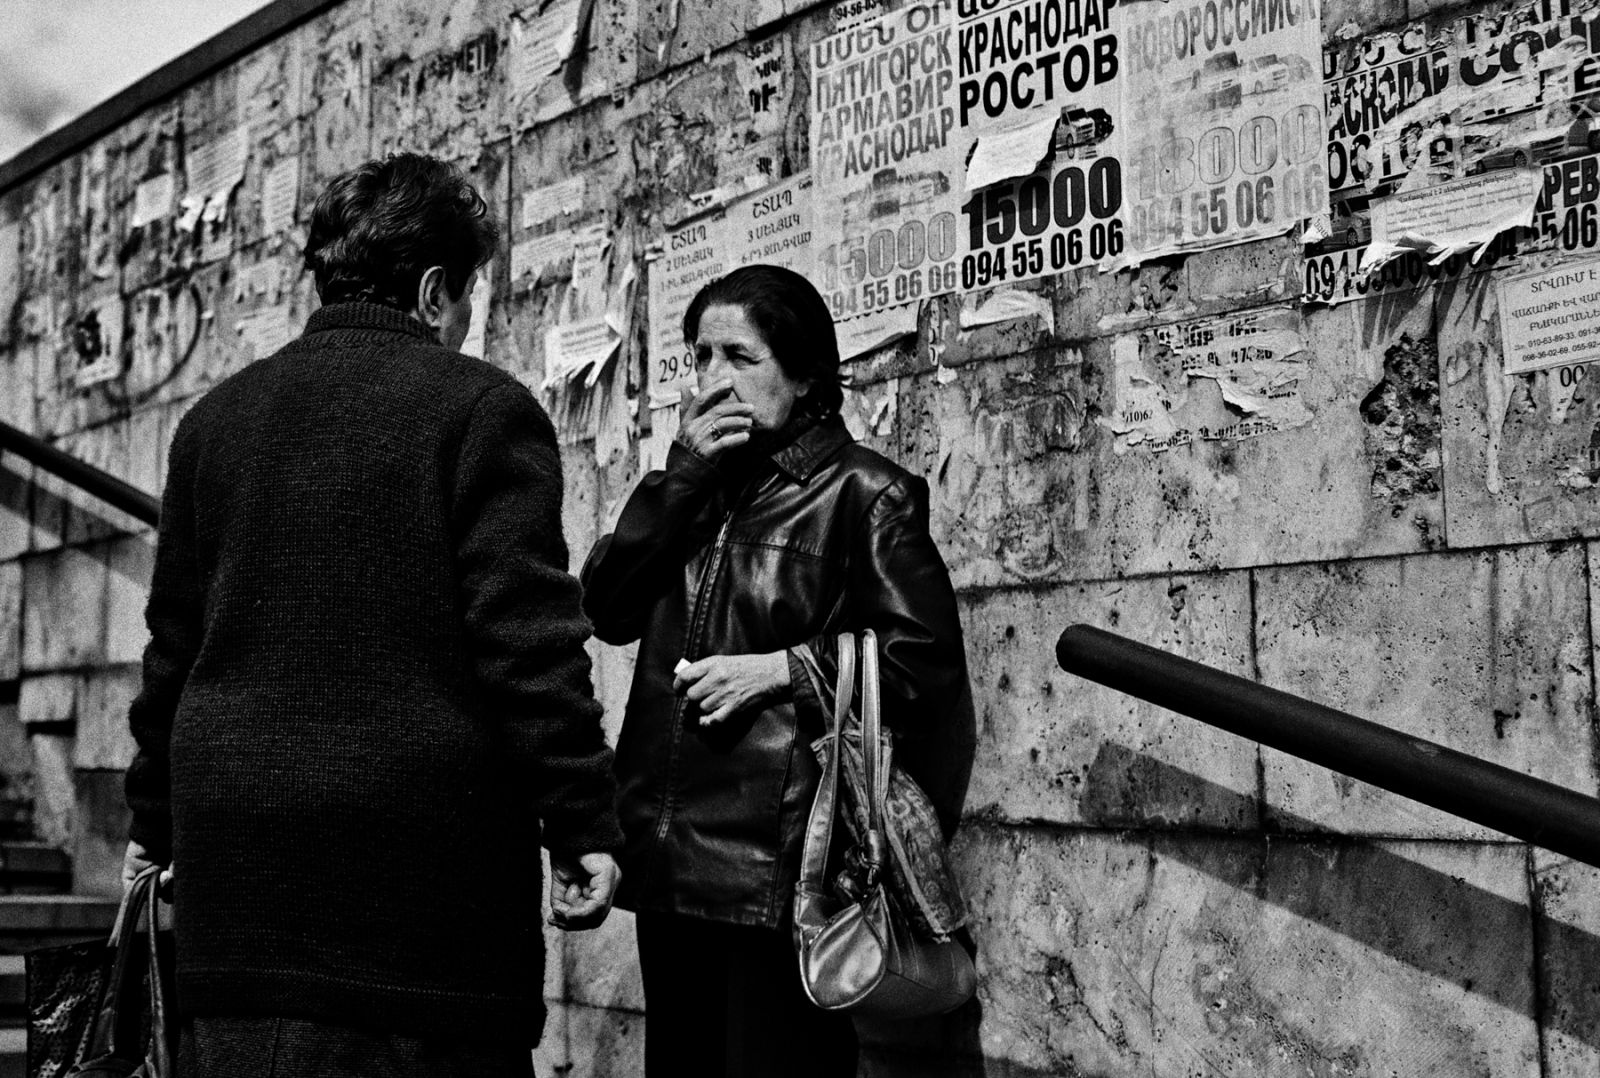 Two women have a conversation on the stairs leading to an underground pedestrian passage in the Capital City of Yerevan, Armenia.